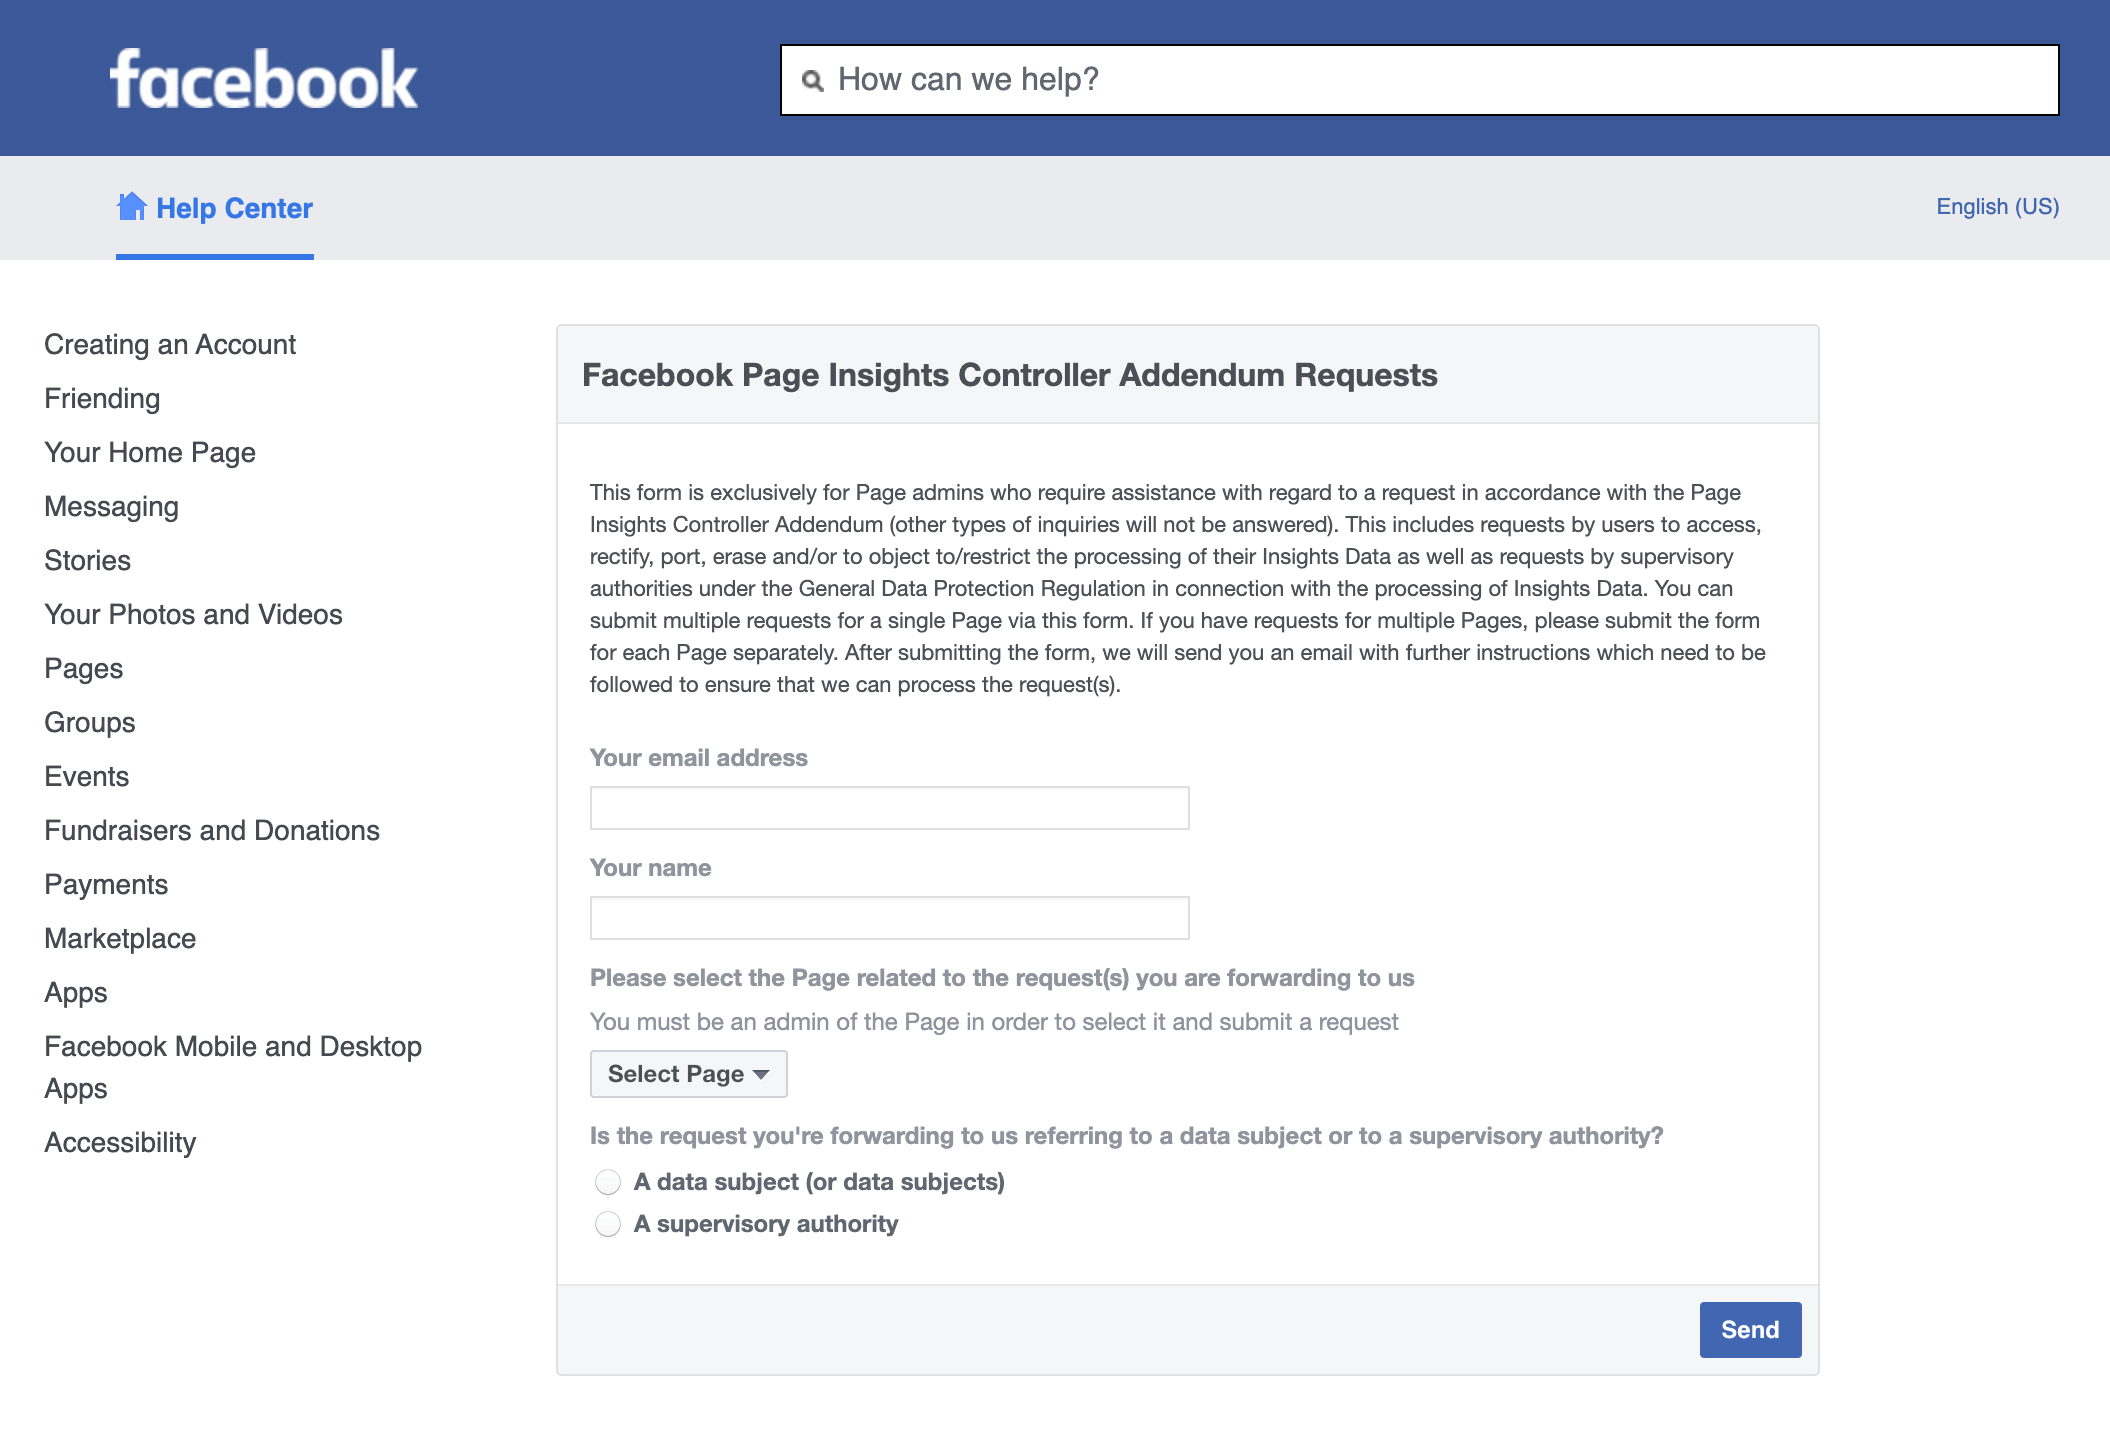 Facebook Page Insights Controller Addendum Requests